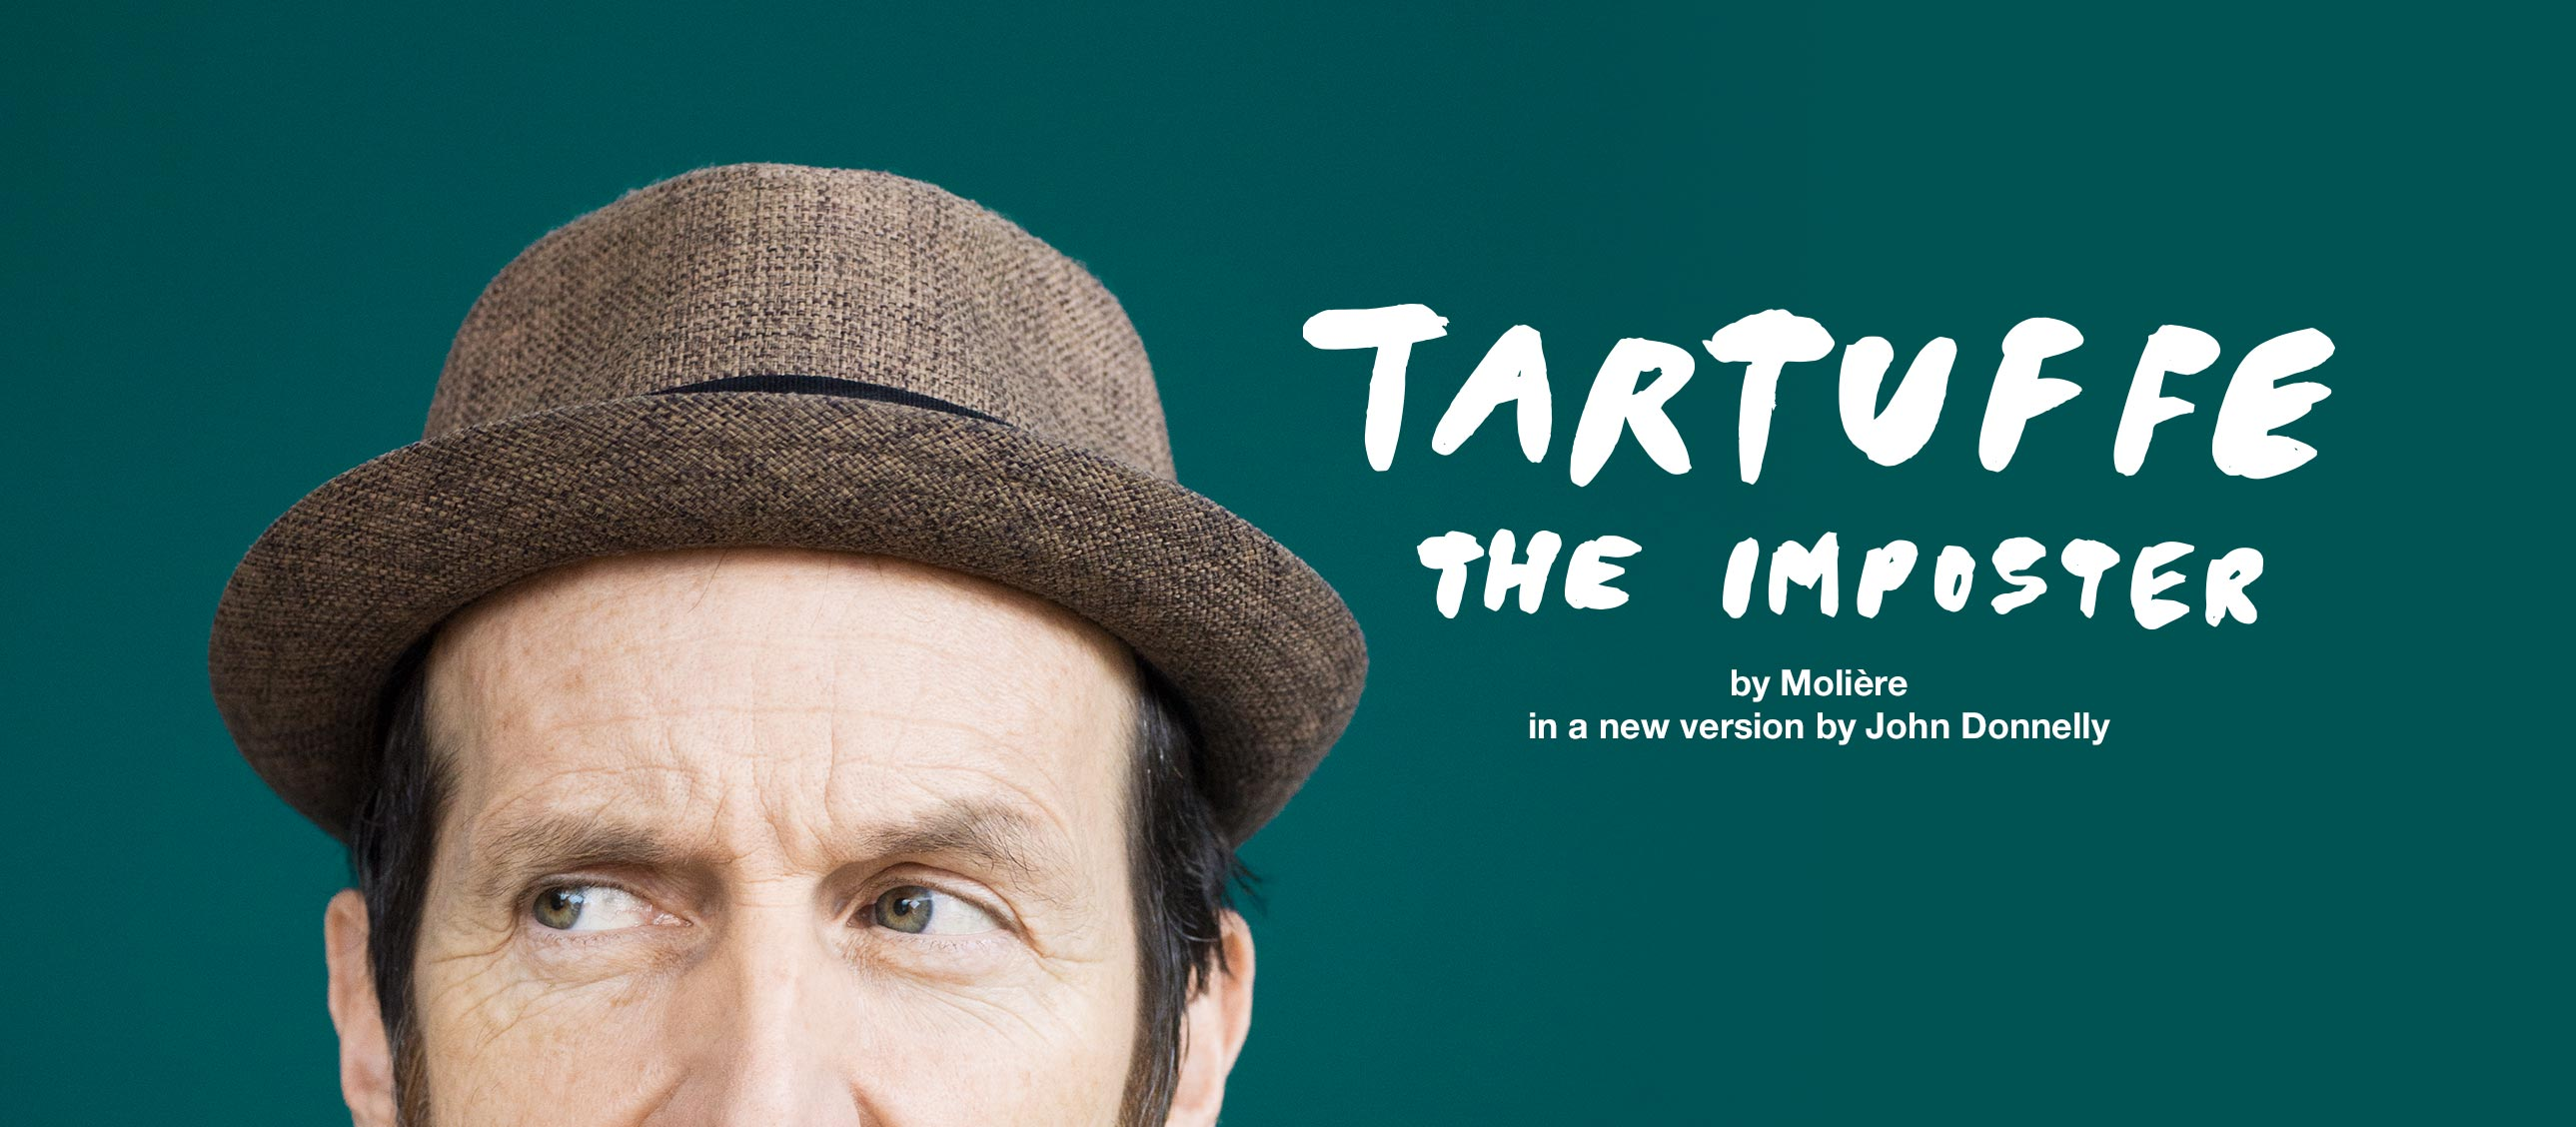 Tartuffe poster - portrait of Denis O'Hare as Tartuffe, with his eyes, forehead and a trilby hat